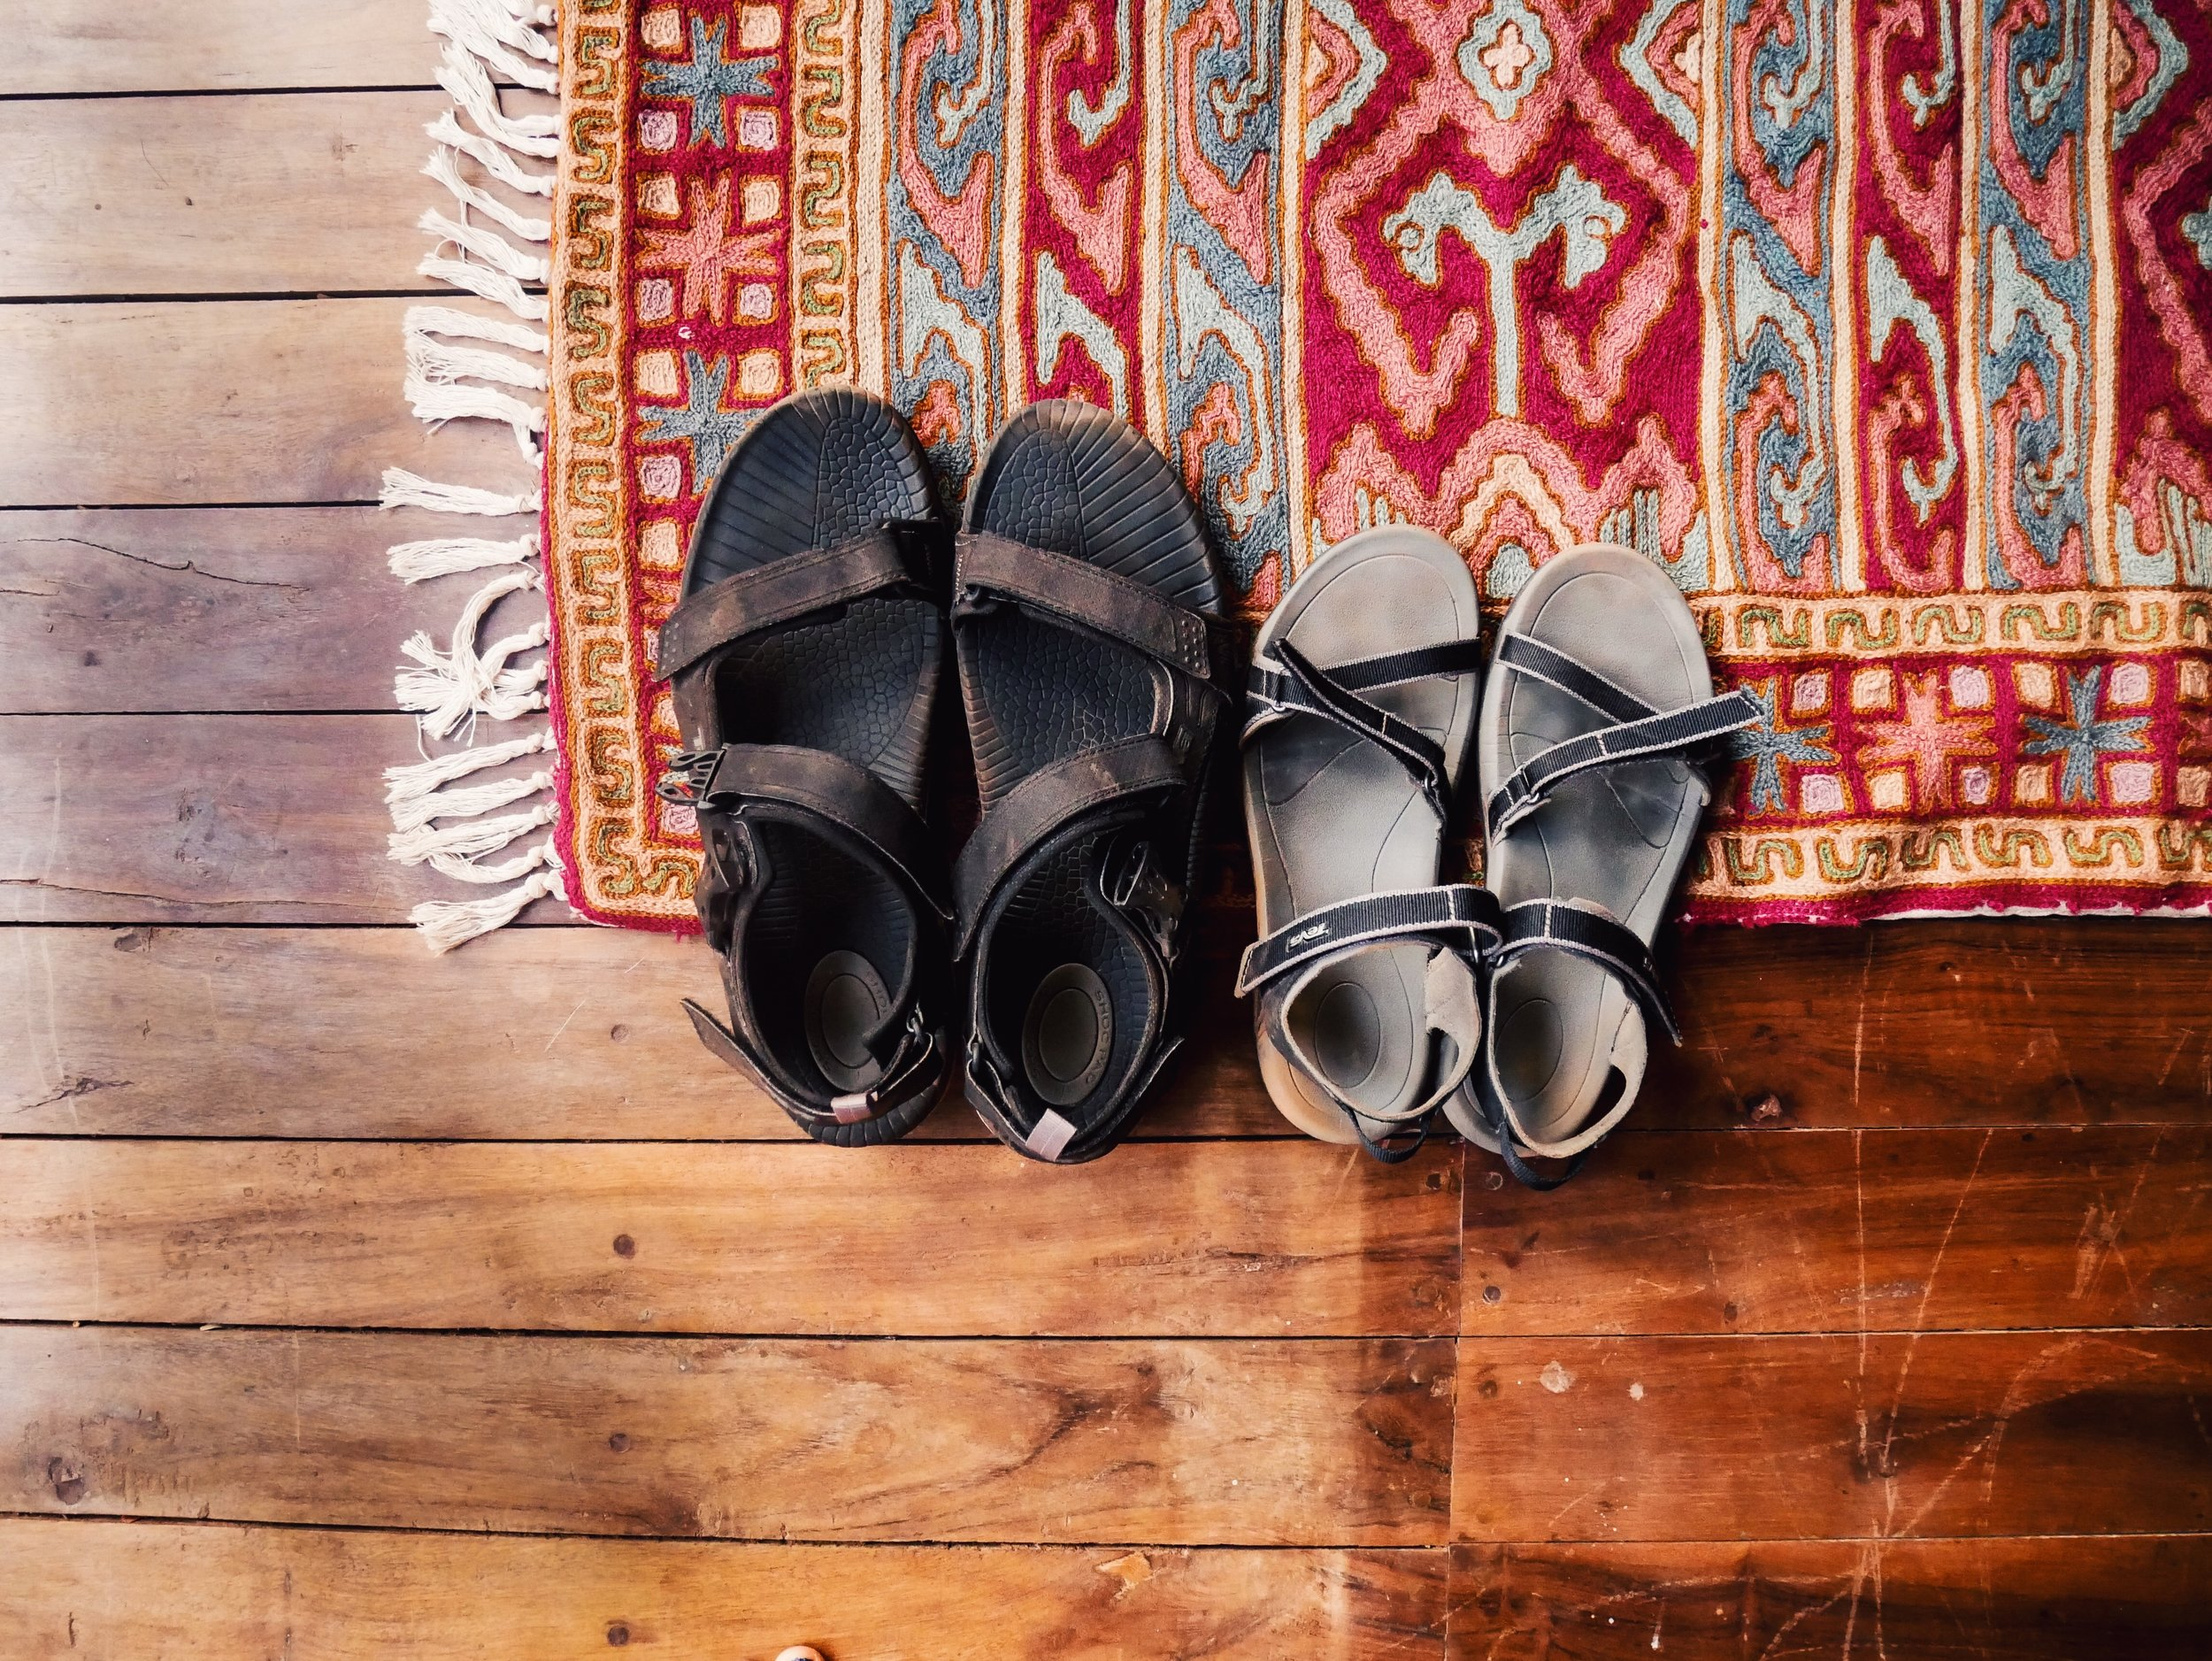 1. Sandals - The no. 1, baby!